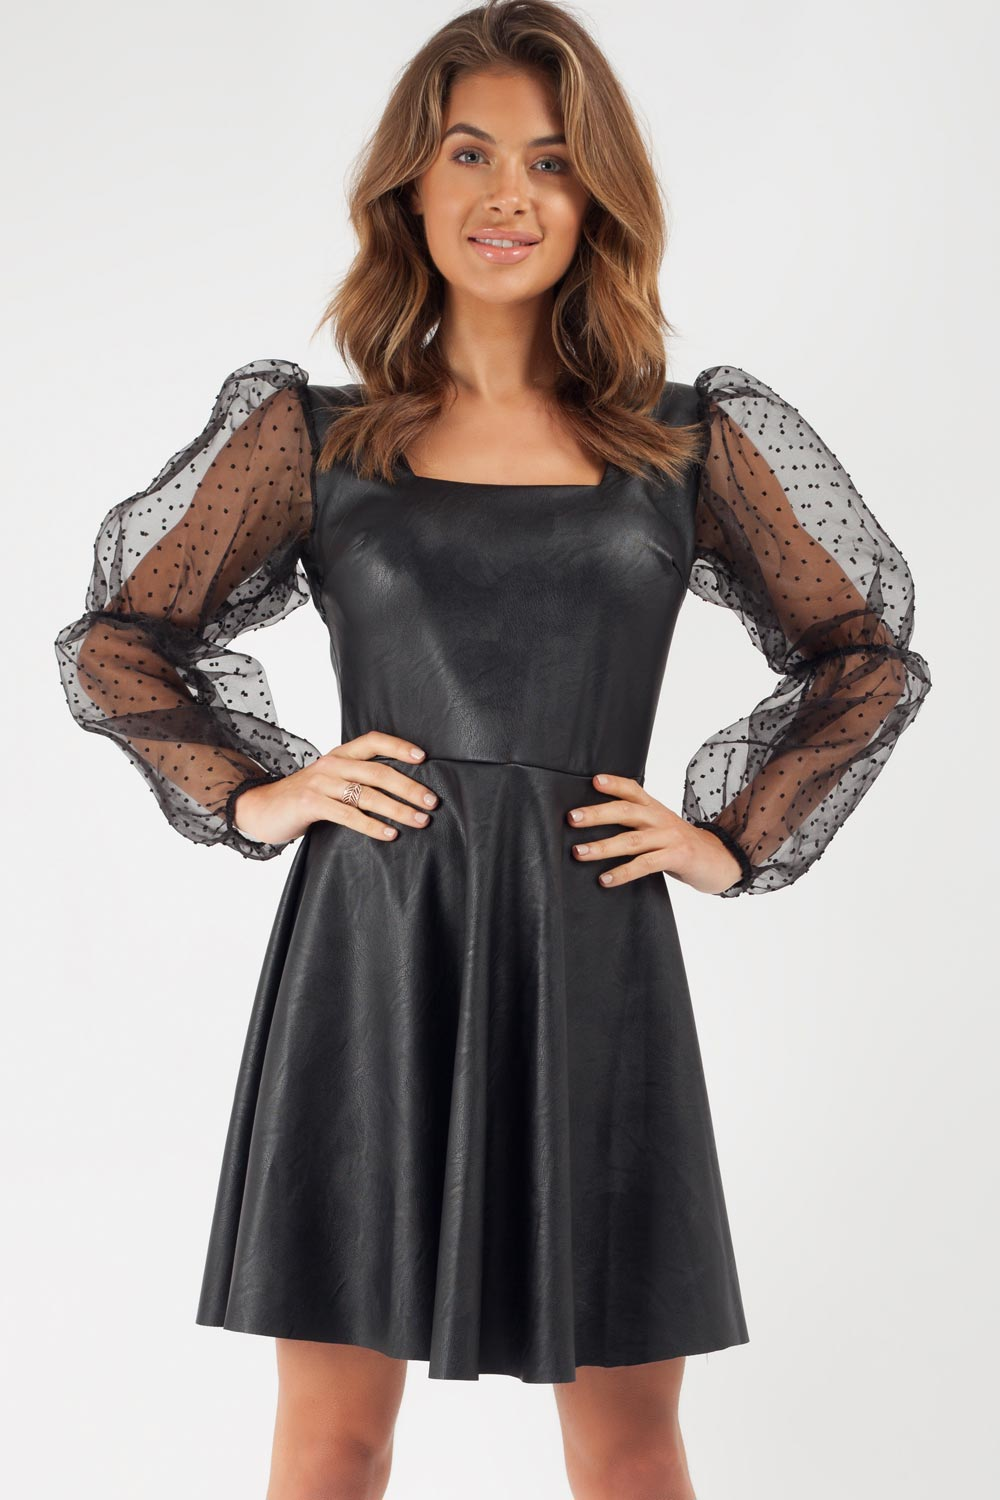 organza sleeve leatherette dress uk